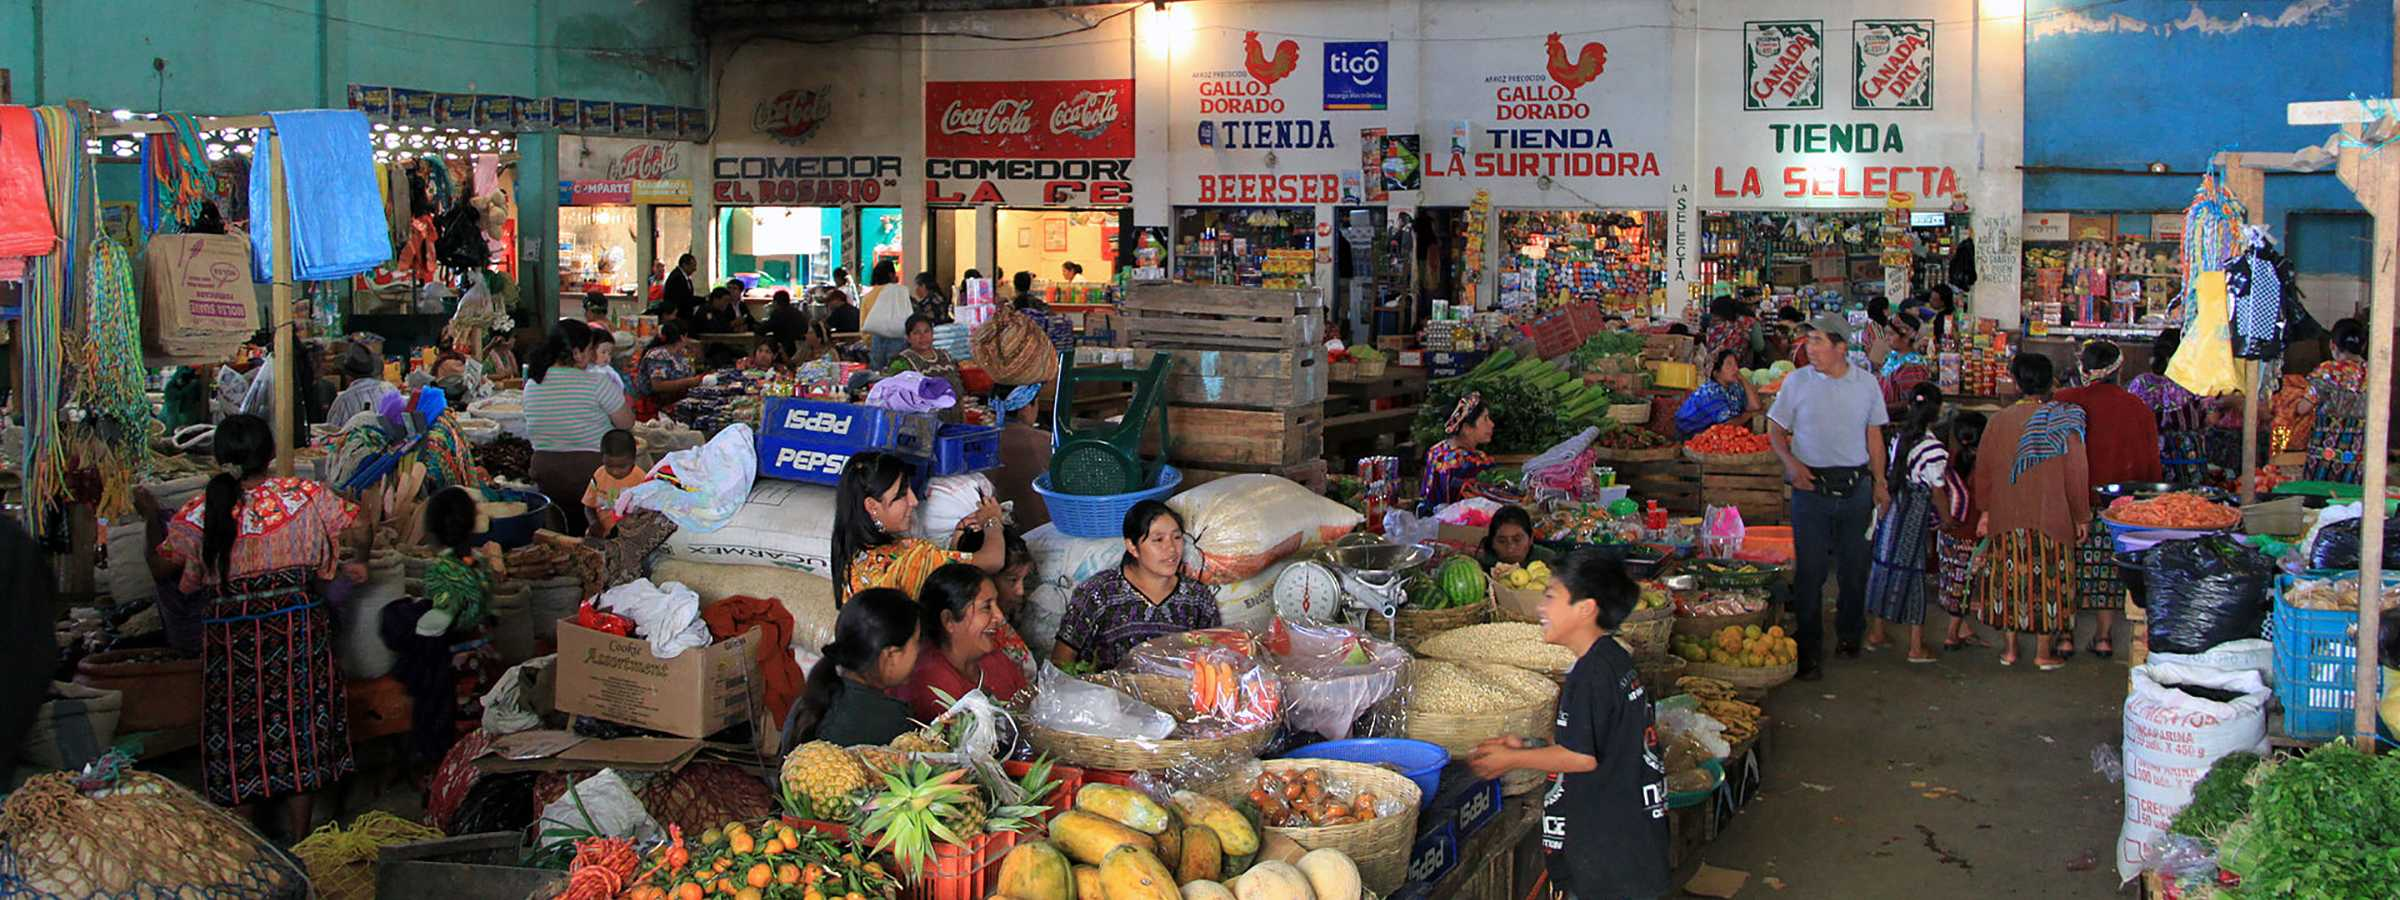 Market in LAC